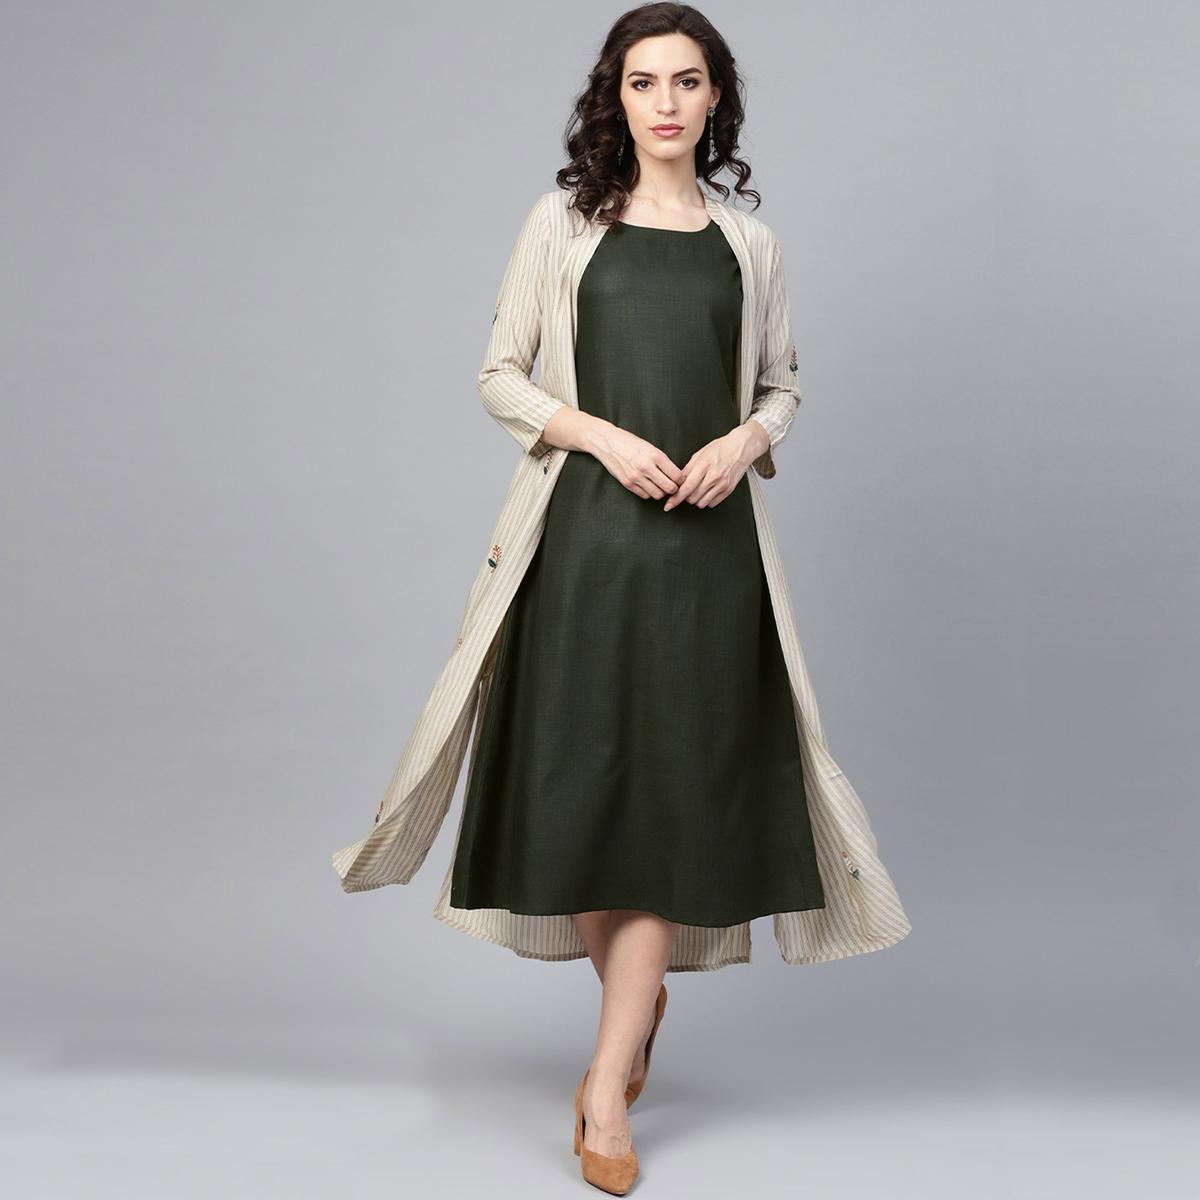 Attractive Beige-Black Colored Party Wear Printed Viscose-Rayon Kurti-Jacket Set